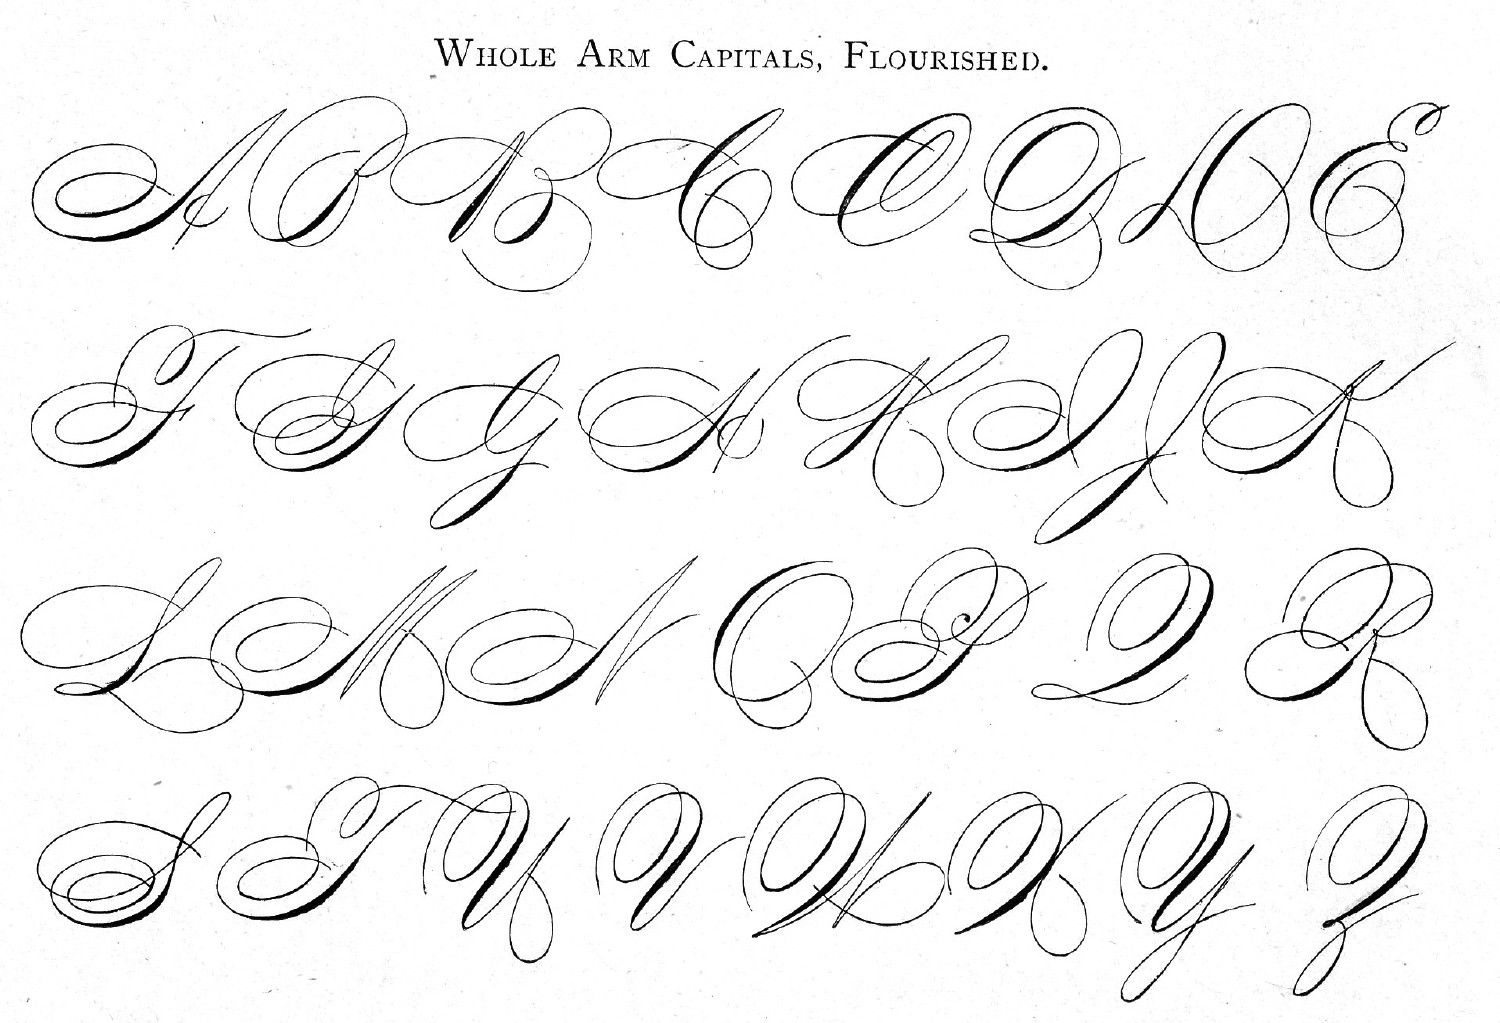 Worksheet Cursive Guide whole arm cursive capitals flourished from ames guide to self self